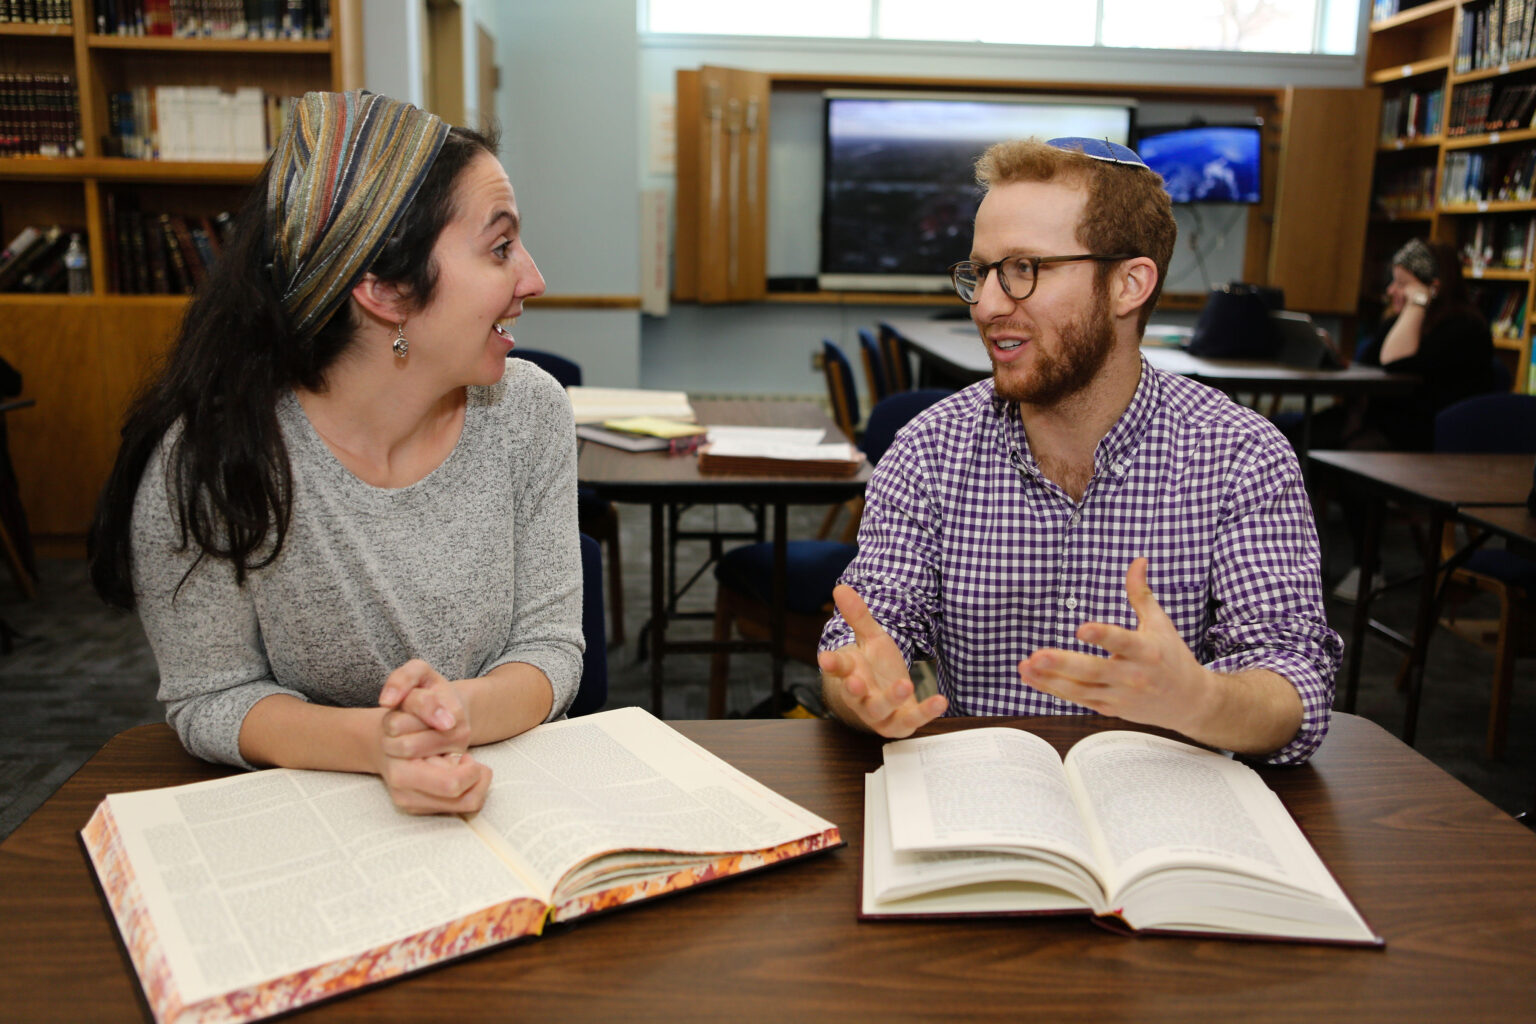 Mind the Gap: A Collaborative Initiative of YCT and Yeshivat Maharat - Chovevei Torah, Setting the standard in rabbinic leadership